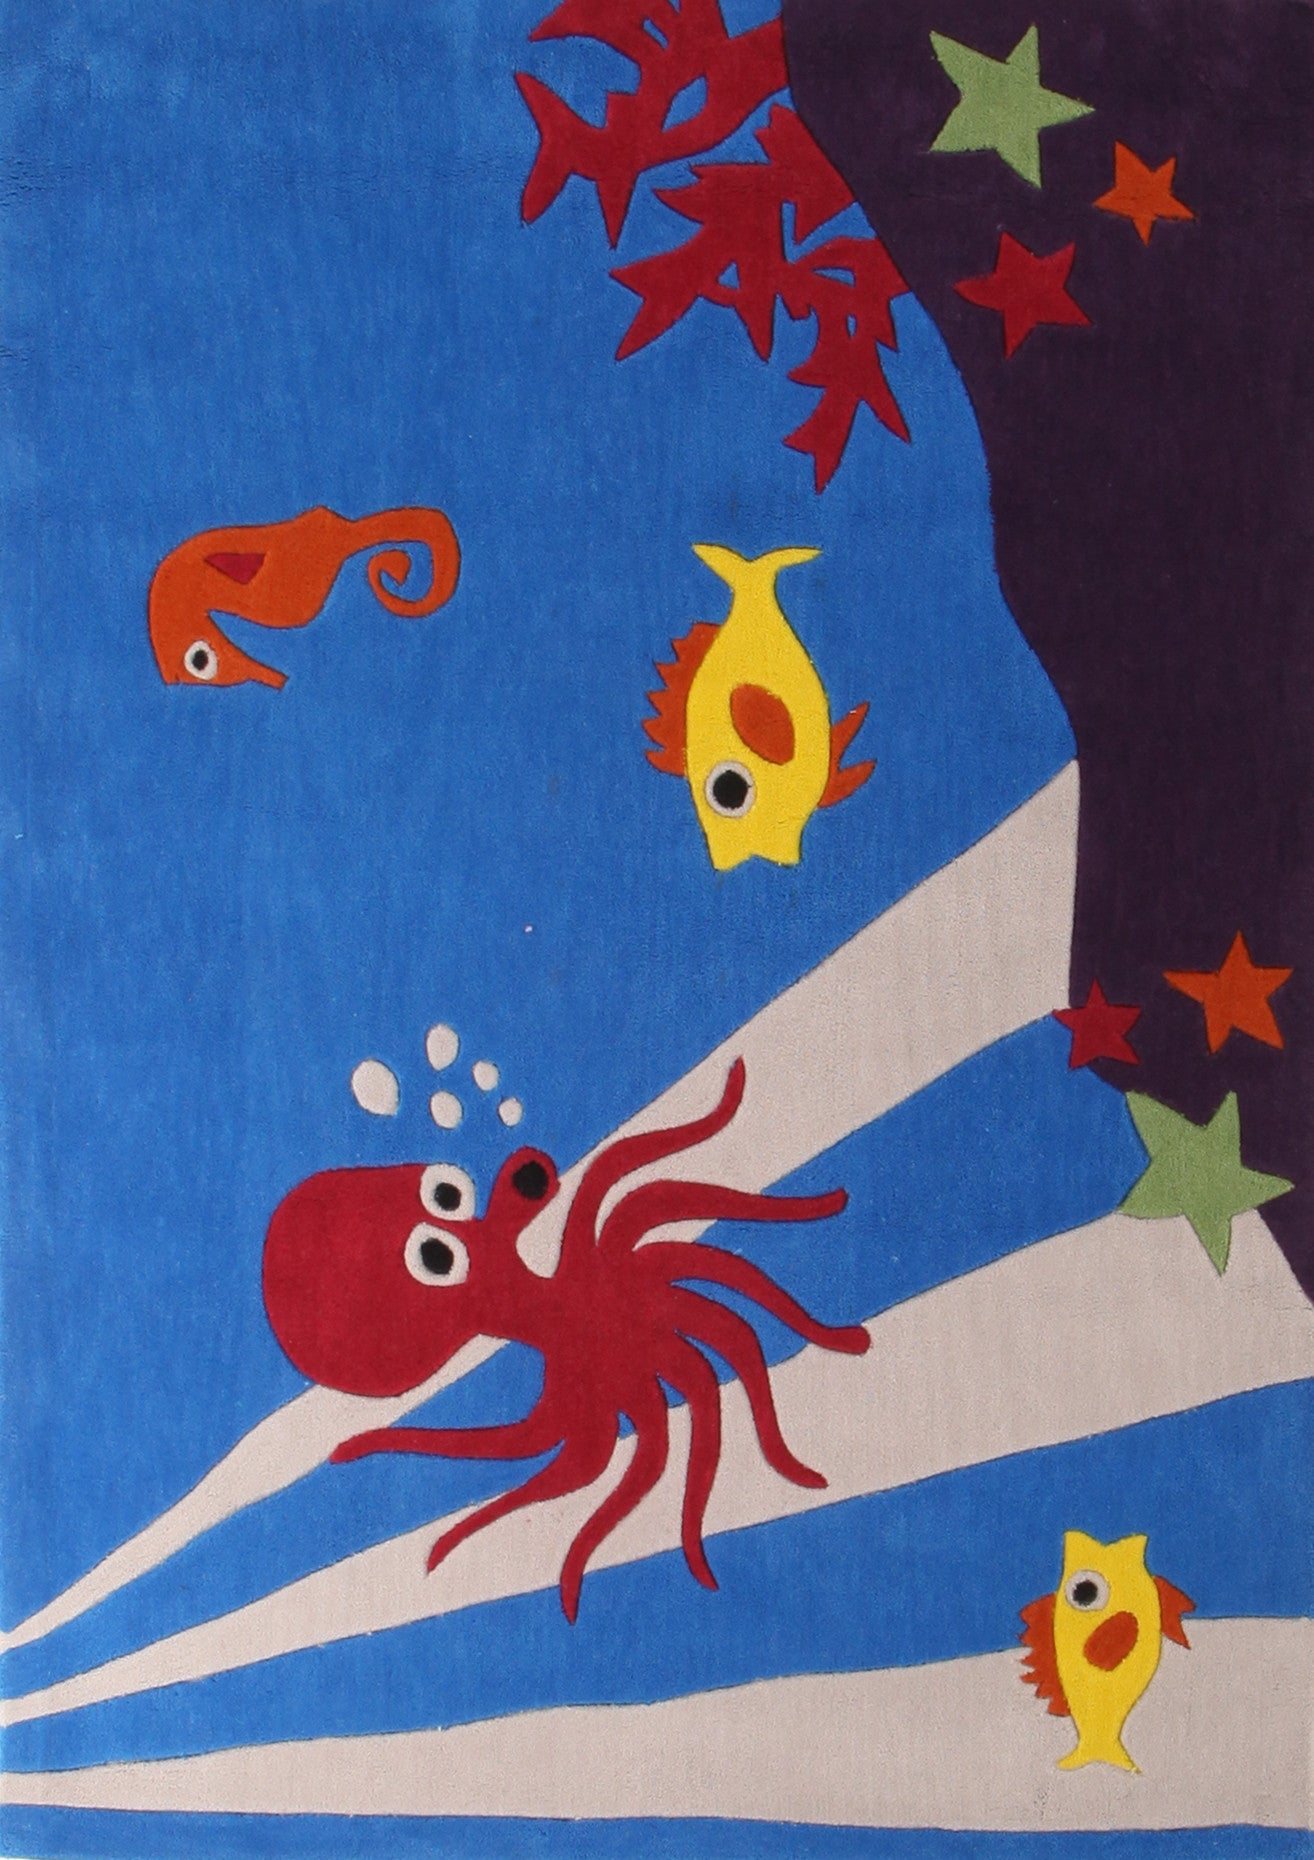 Kidding Around Under Water Theme Rug - Blue